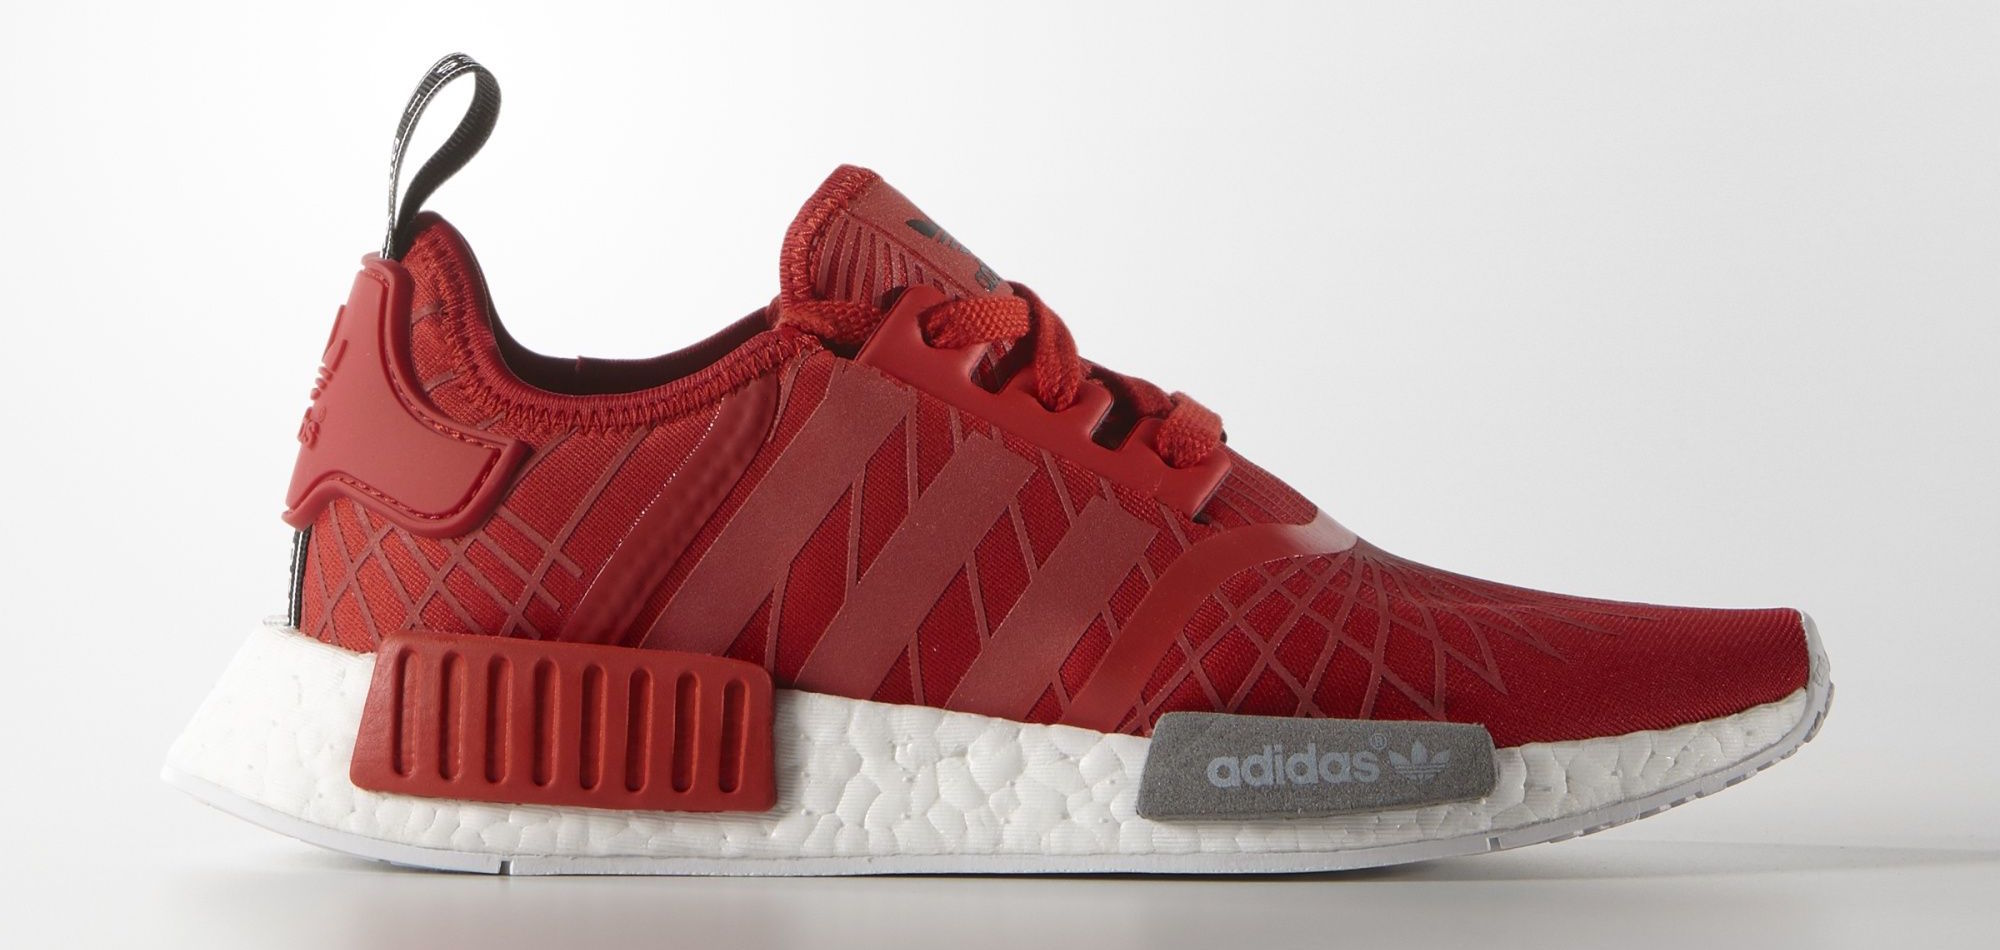 adidas nmd womens maroon and grey grey white and black adidas shoes